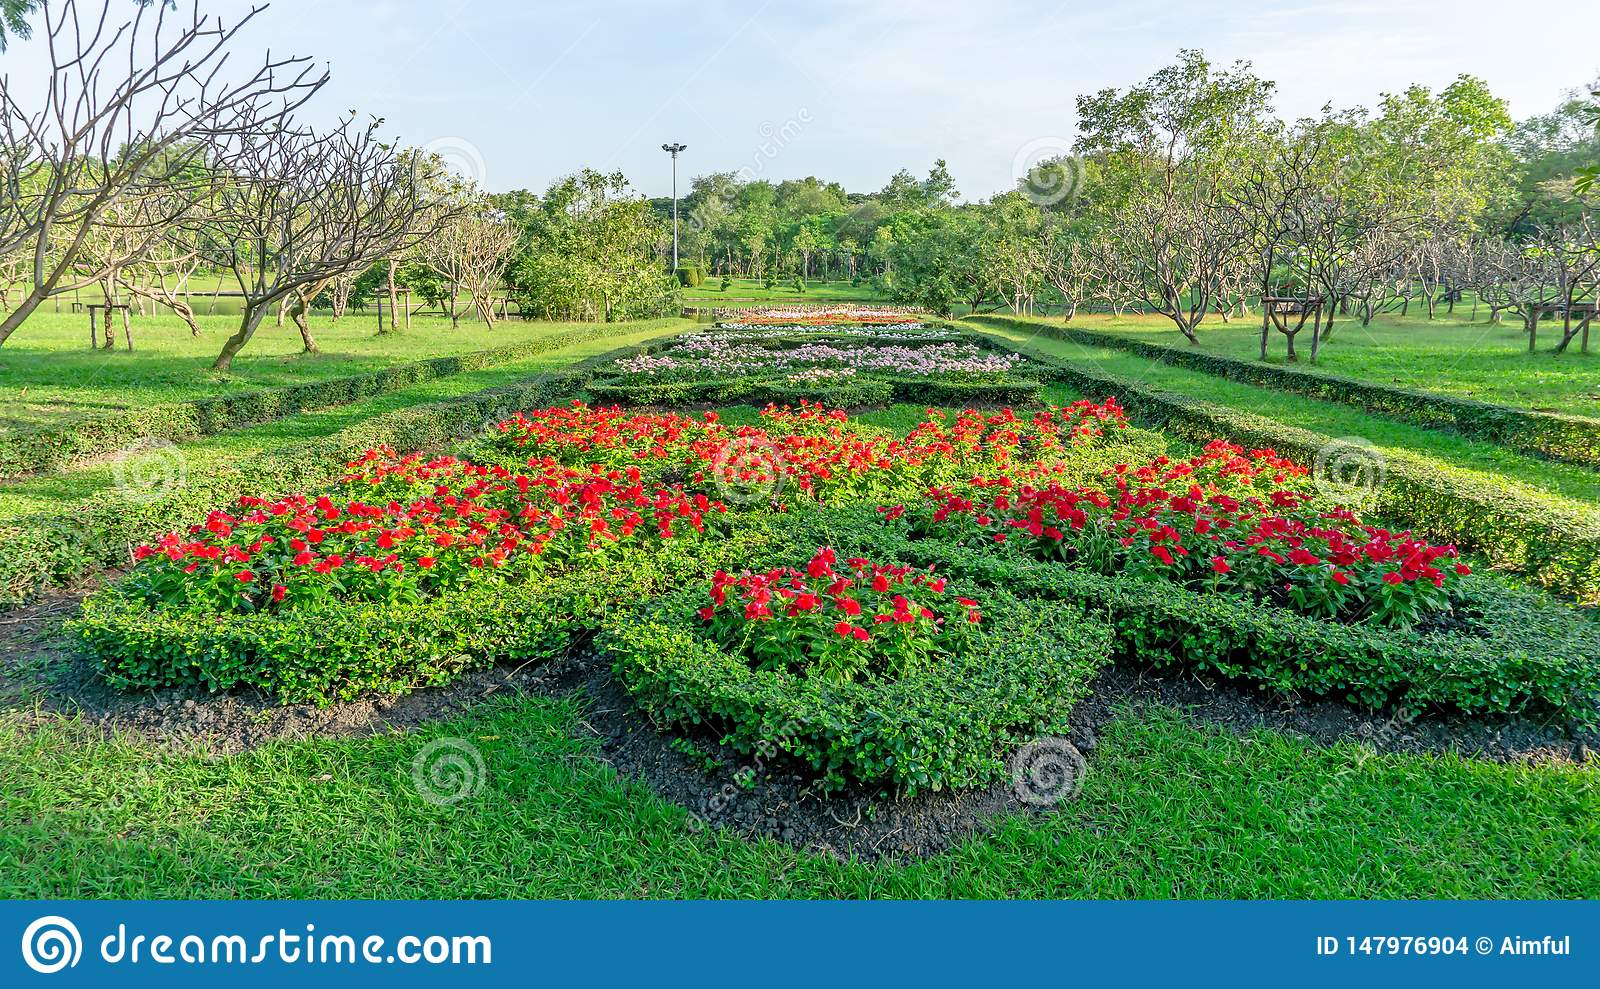 Pattern of English formal garden style, red Madagascar periwinkle and colorful flowering plant blooming in a green leaf